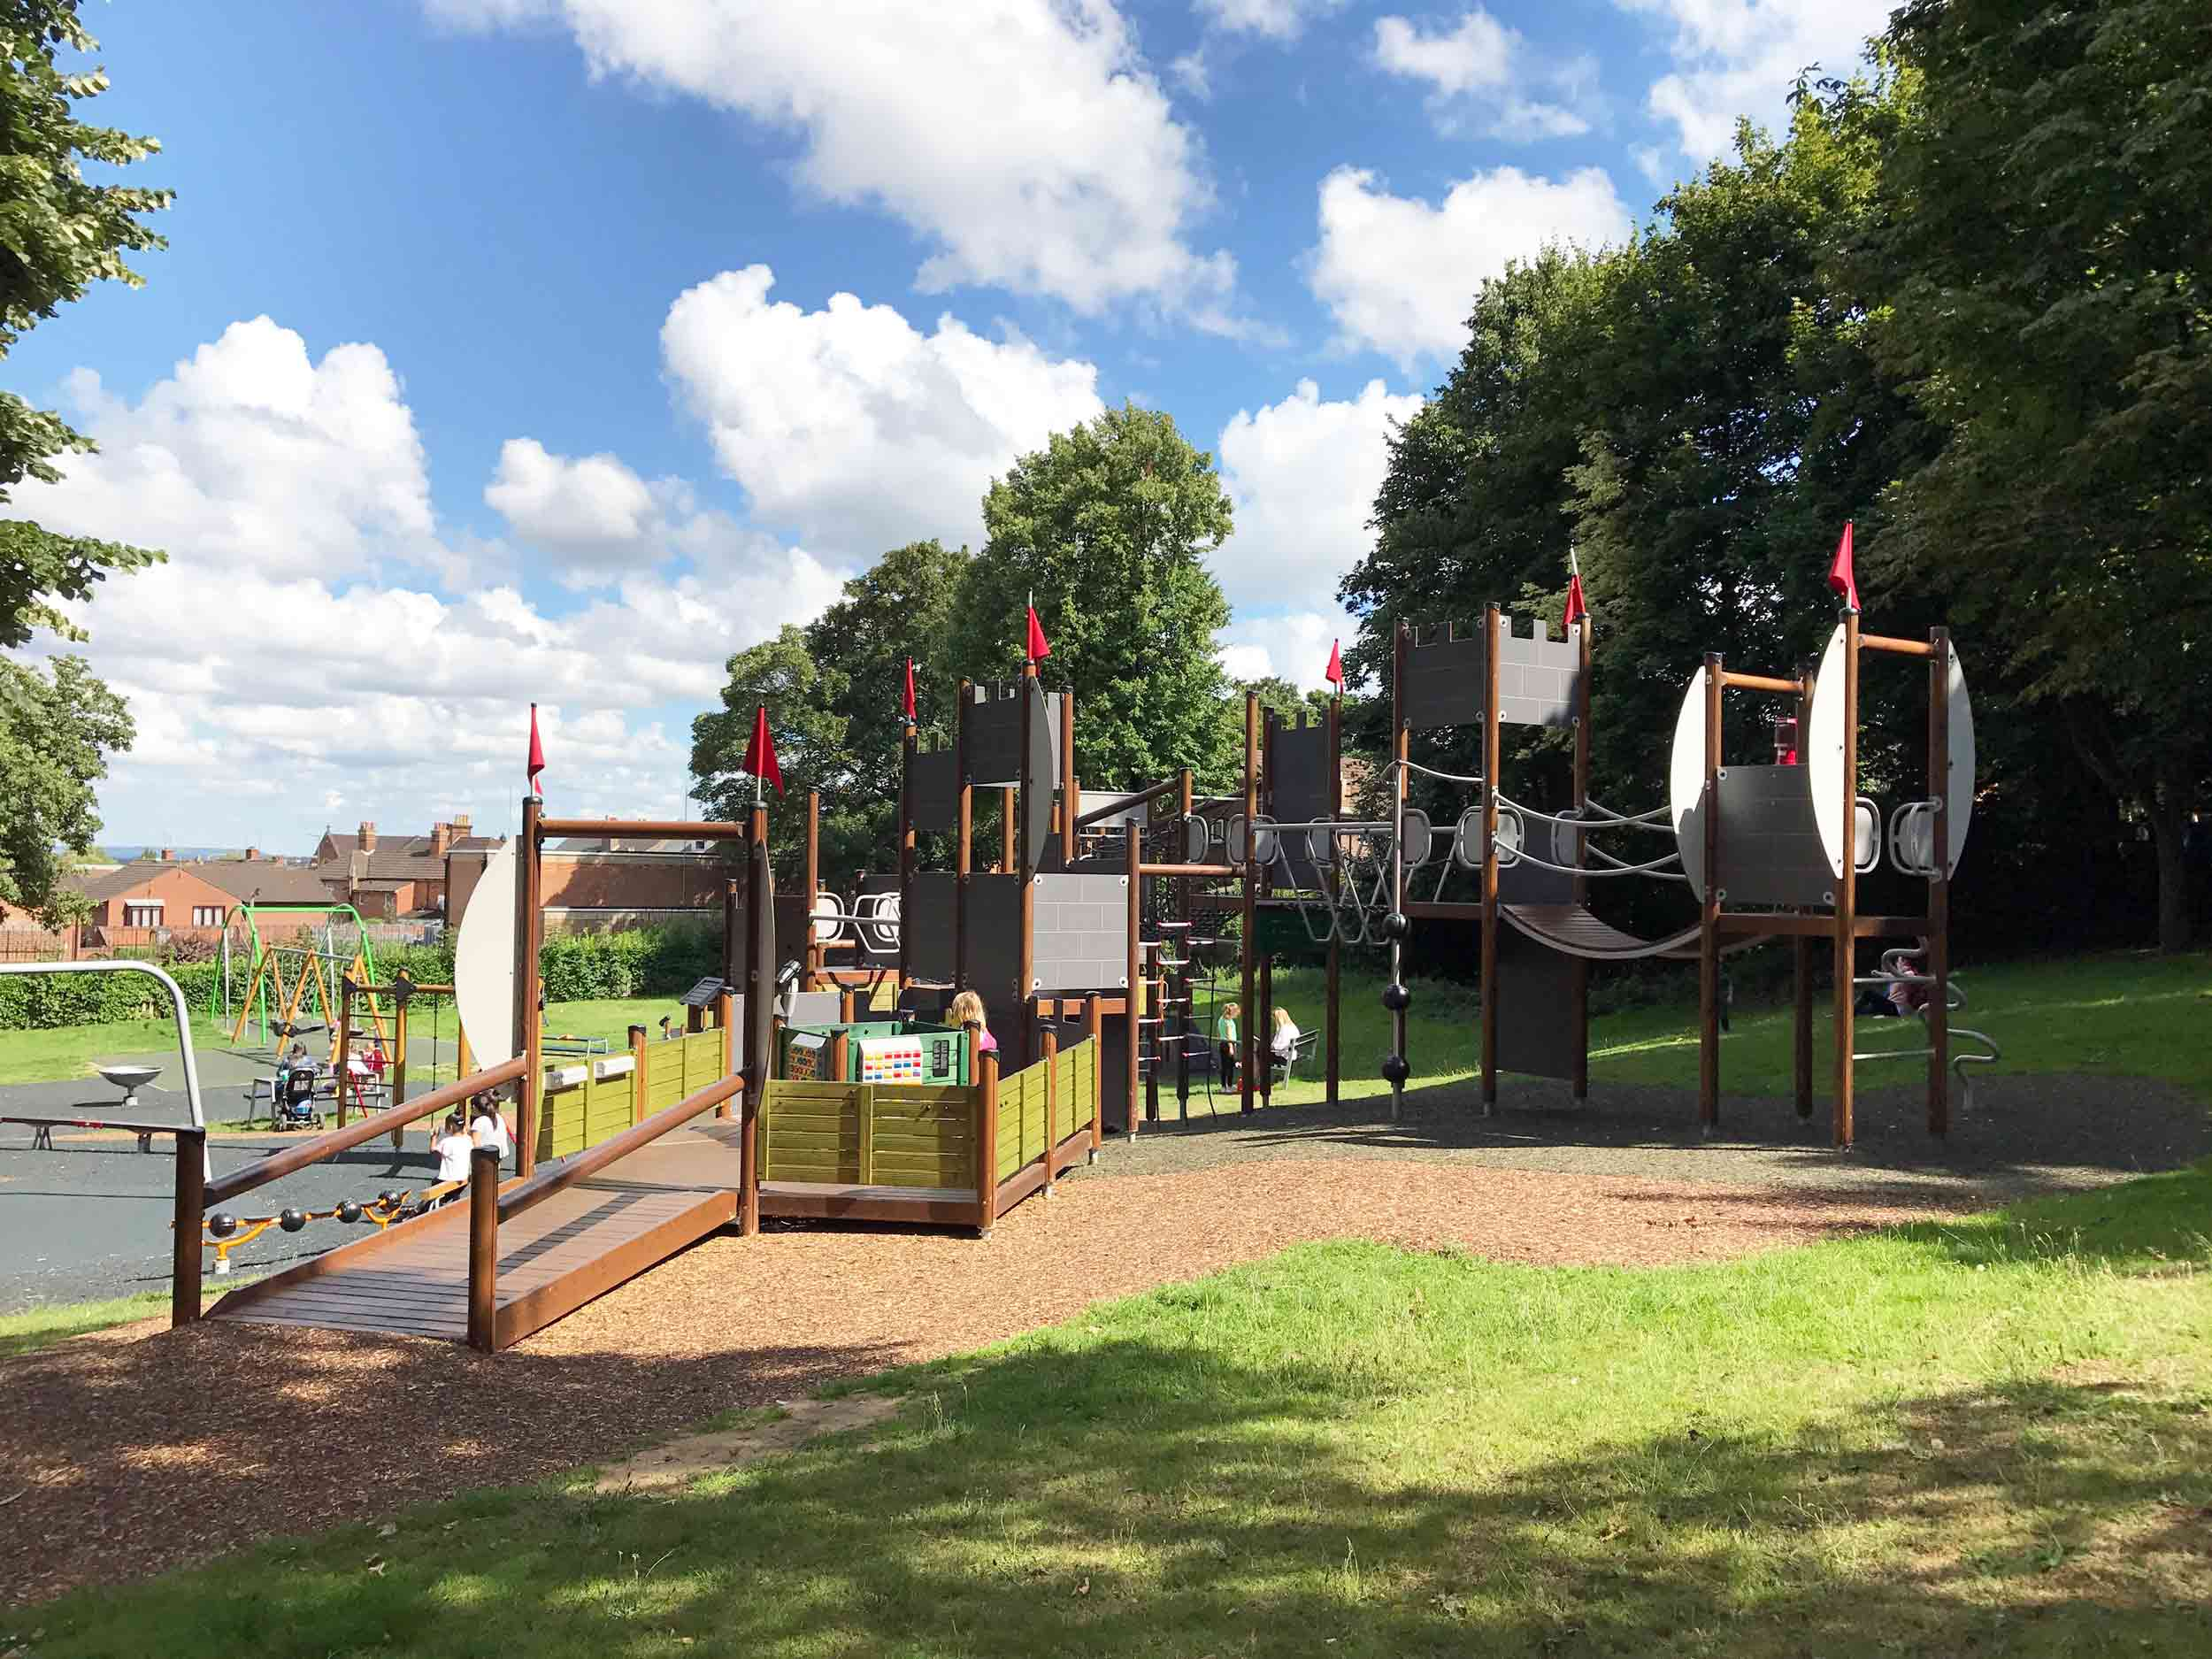 Nice Municipal Gardens And Play Area, Aldershot, Hampshire